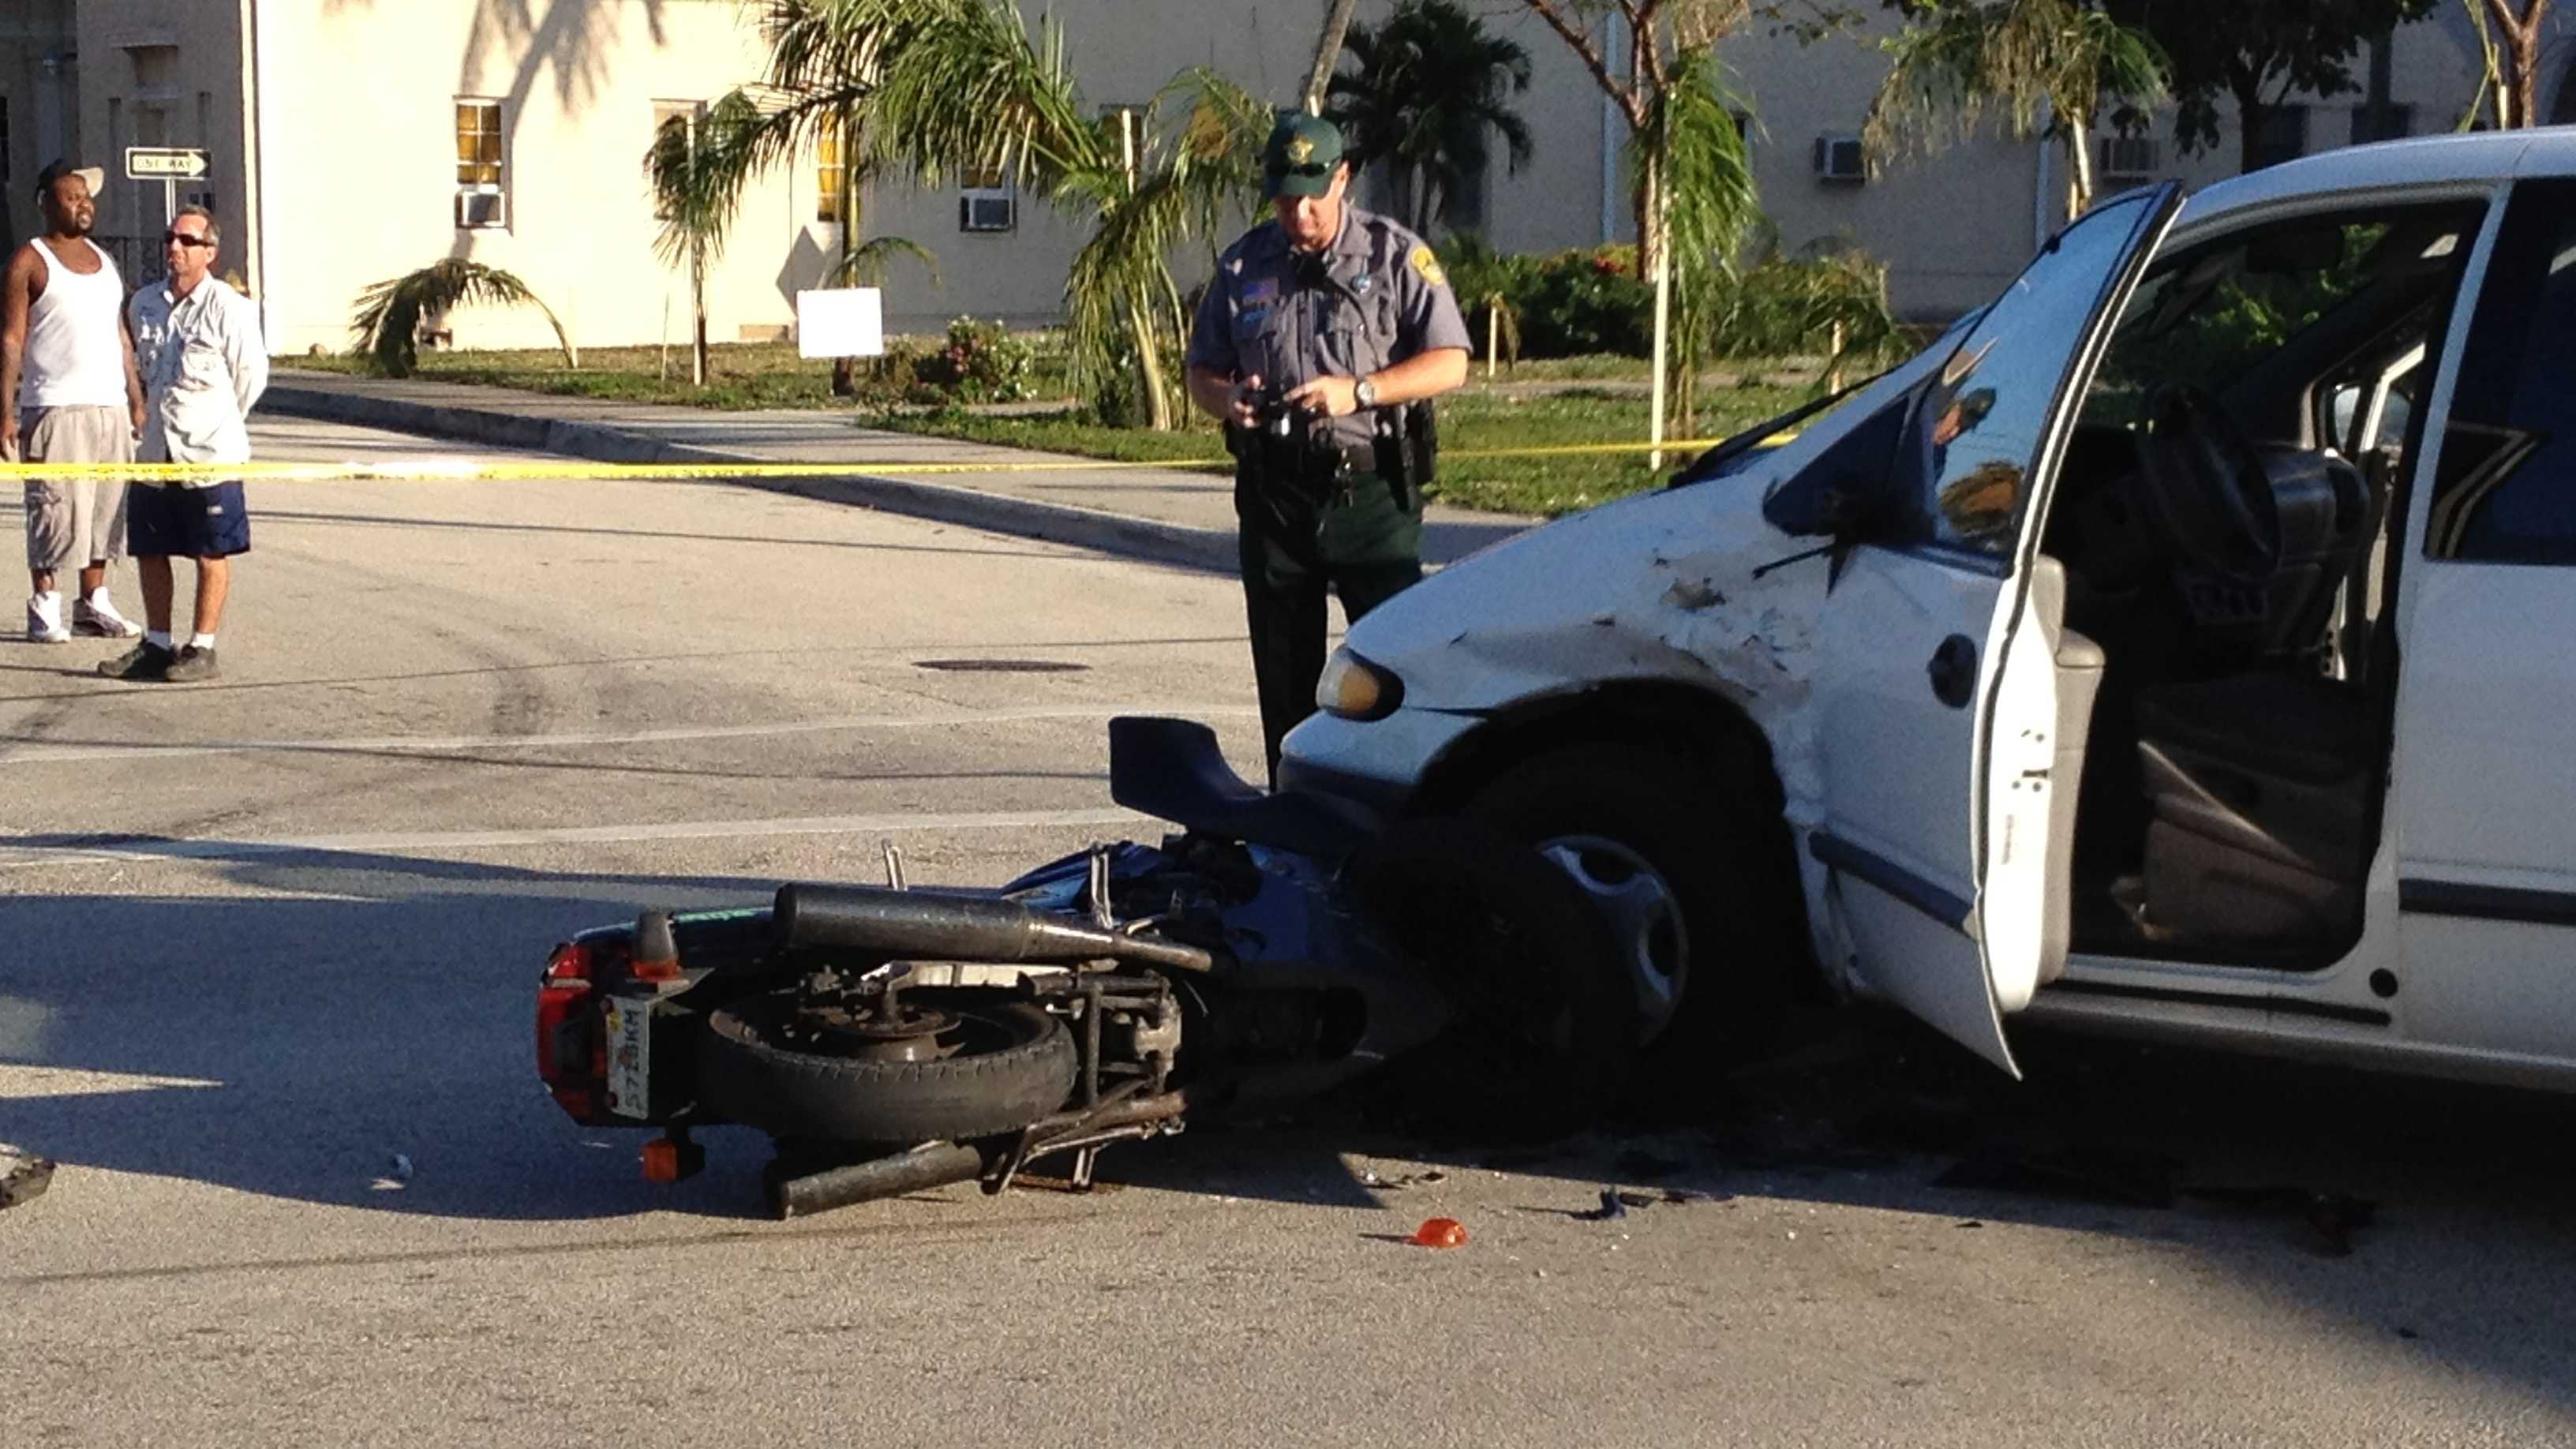 Two people were hospitalized after a motorcycle and van collided in Lake Worth.